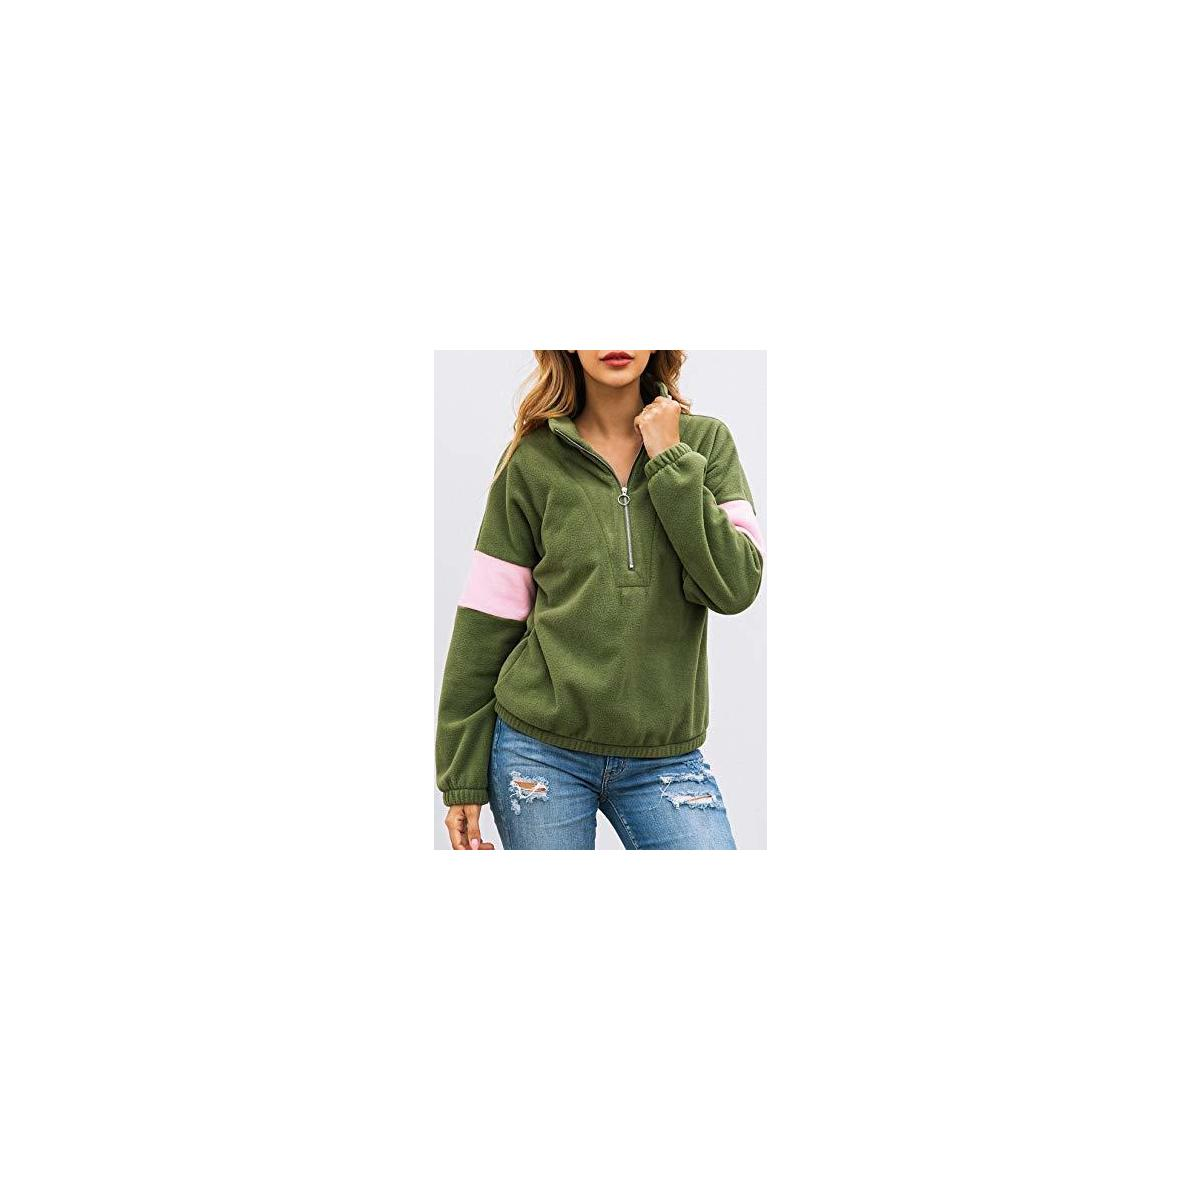 Women's Long Sleeve Half Zipper Pullover Sweatshirt Crossing Windproof Fleece Anti-Pilling Coat Winter Outwear Tops